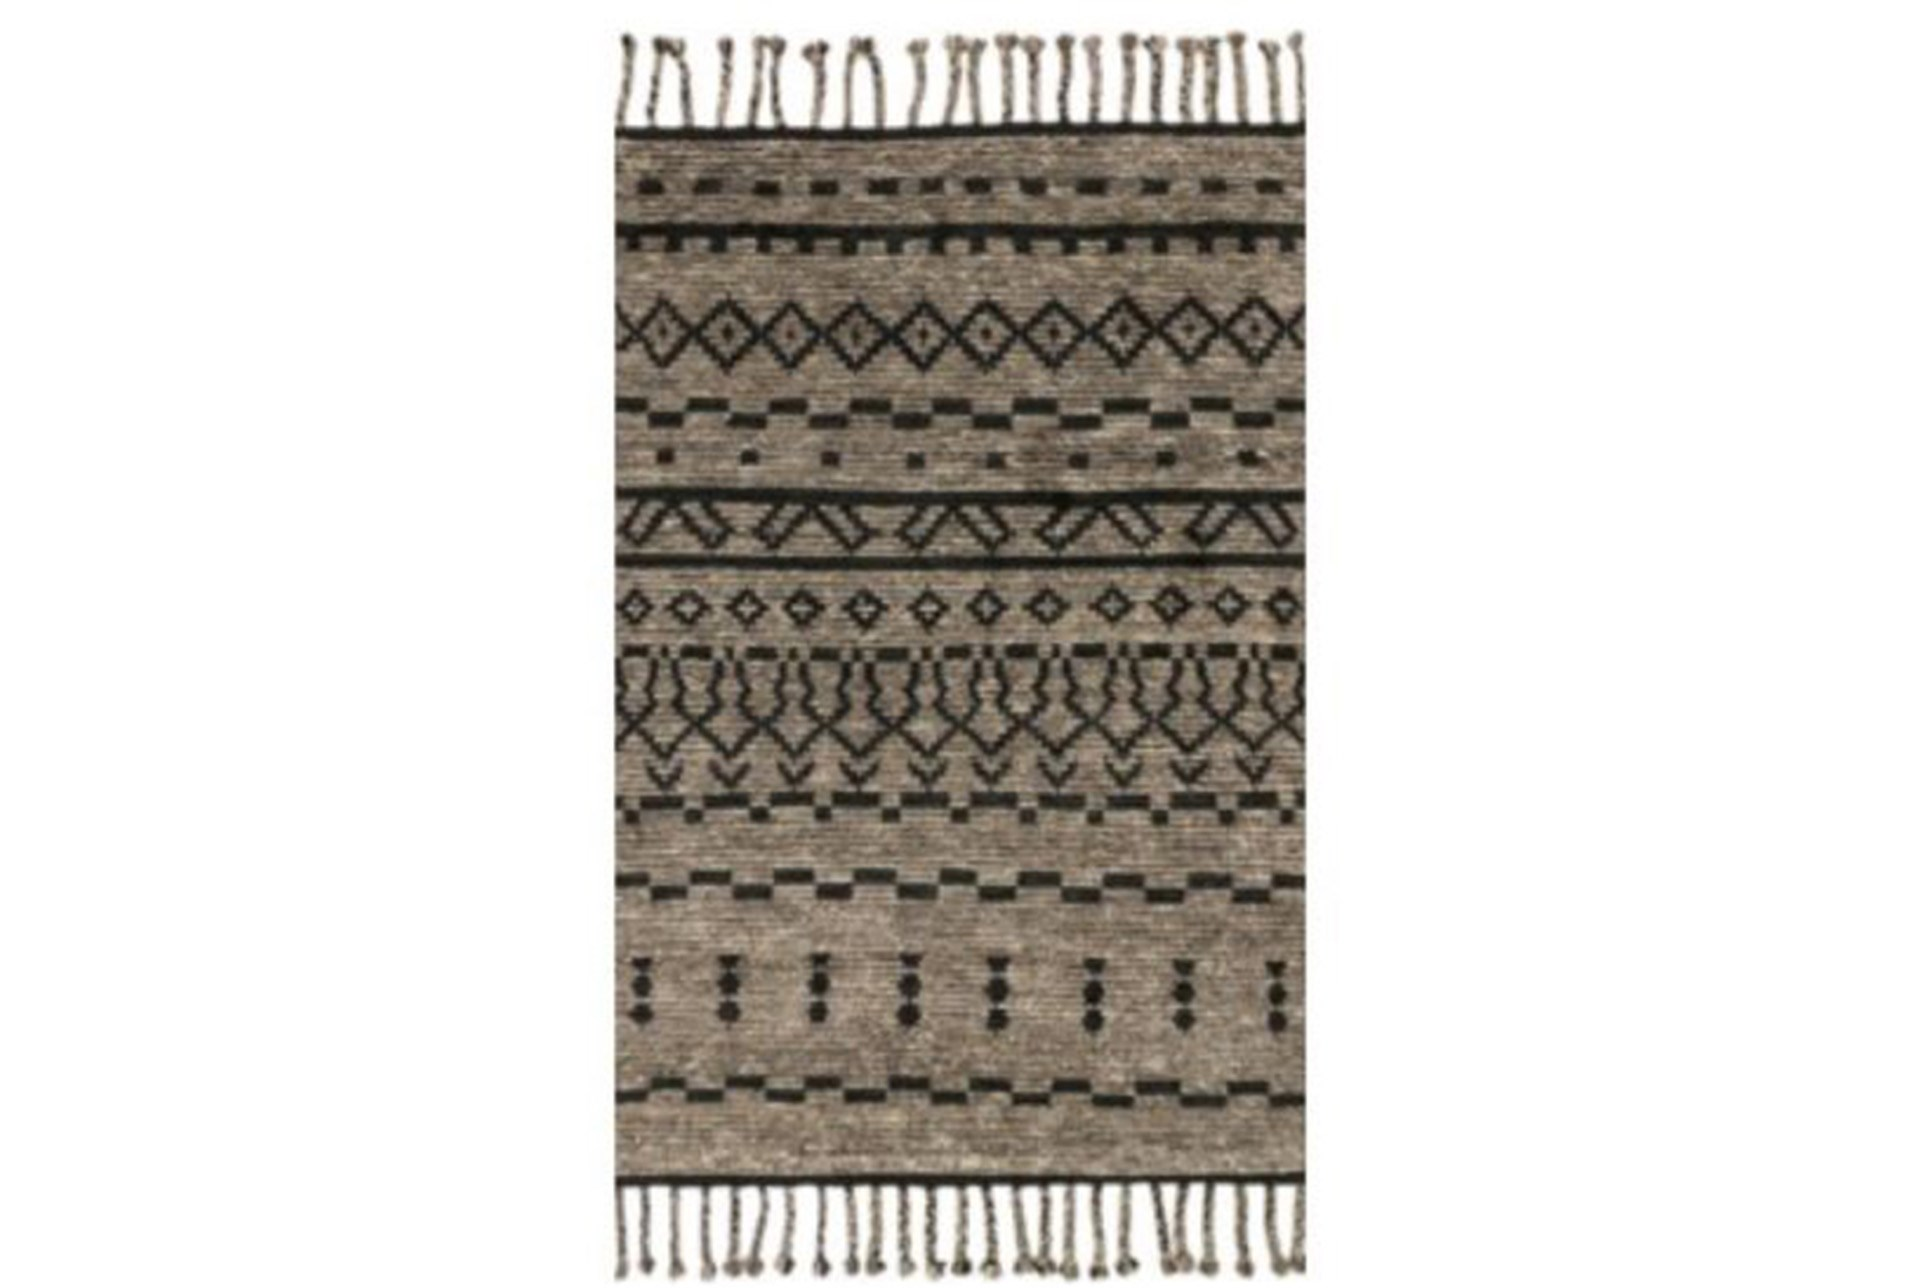 area tulum country pin by home ivory quaint with showcases magnolia of charm rug fixer tf designer joanna gaines pebble upper rugs